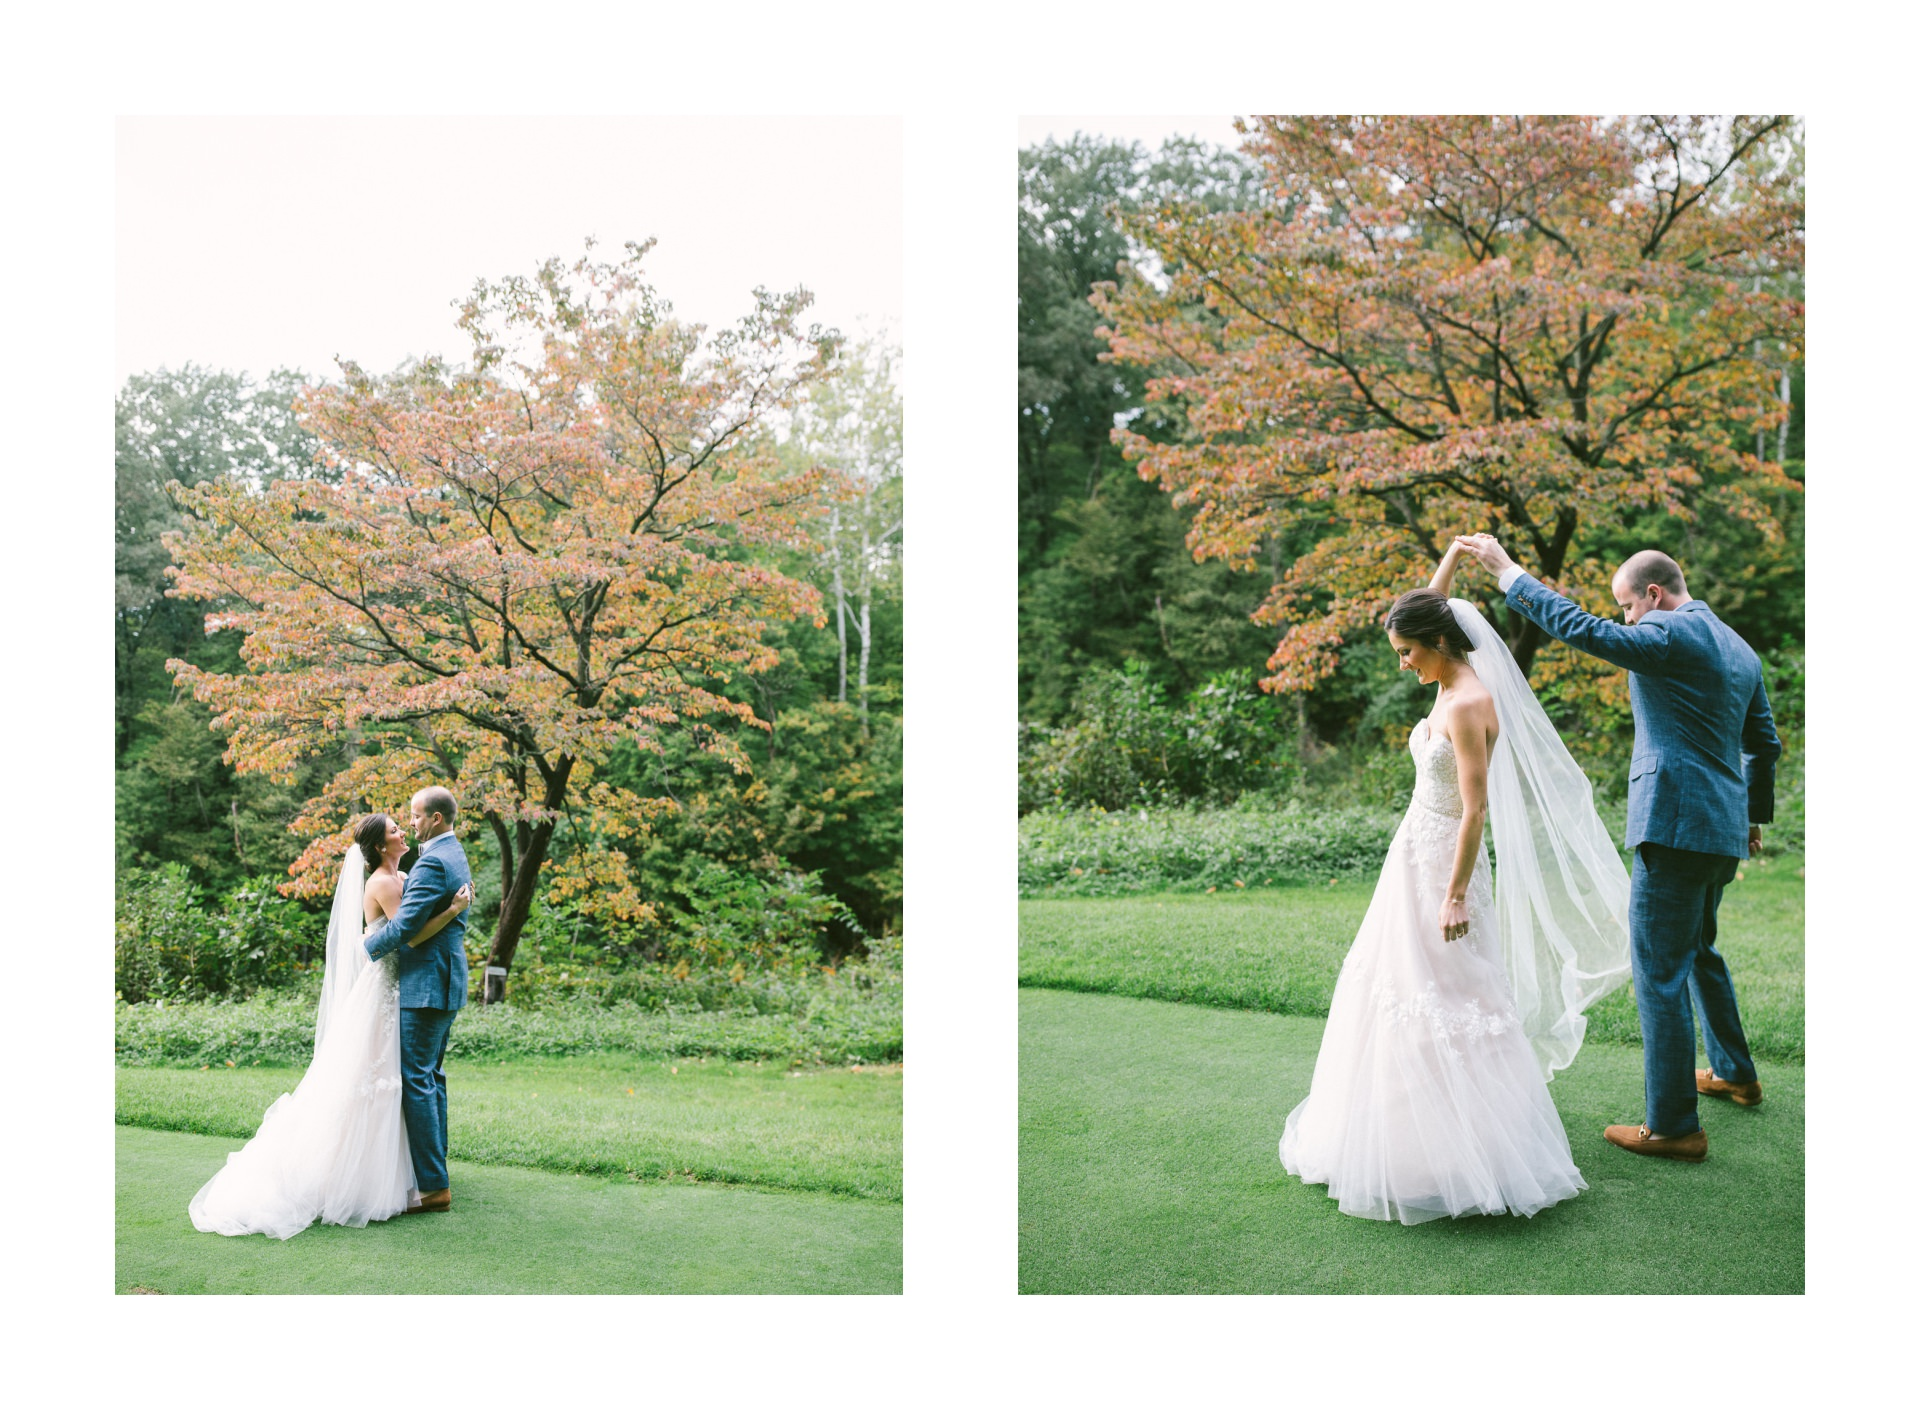 Wedding at Kirtland Country Club in Willoughby 2 27.jpg